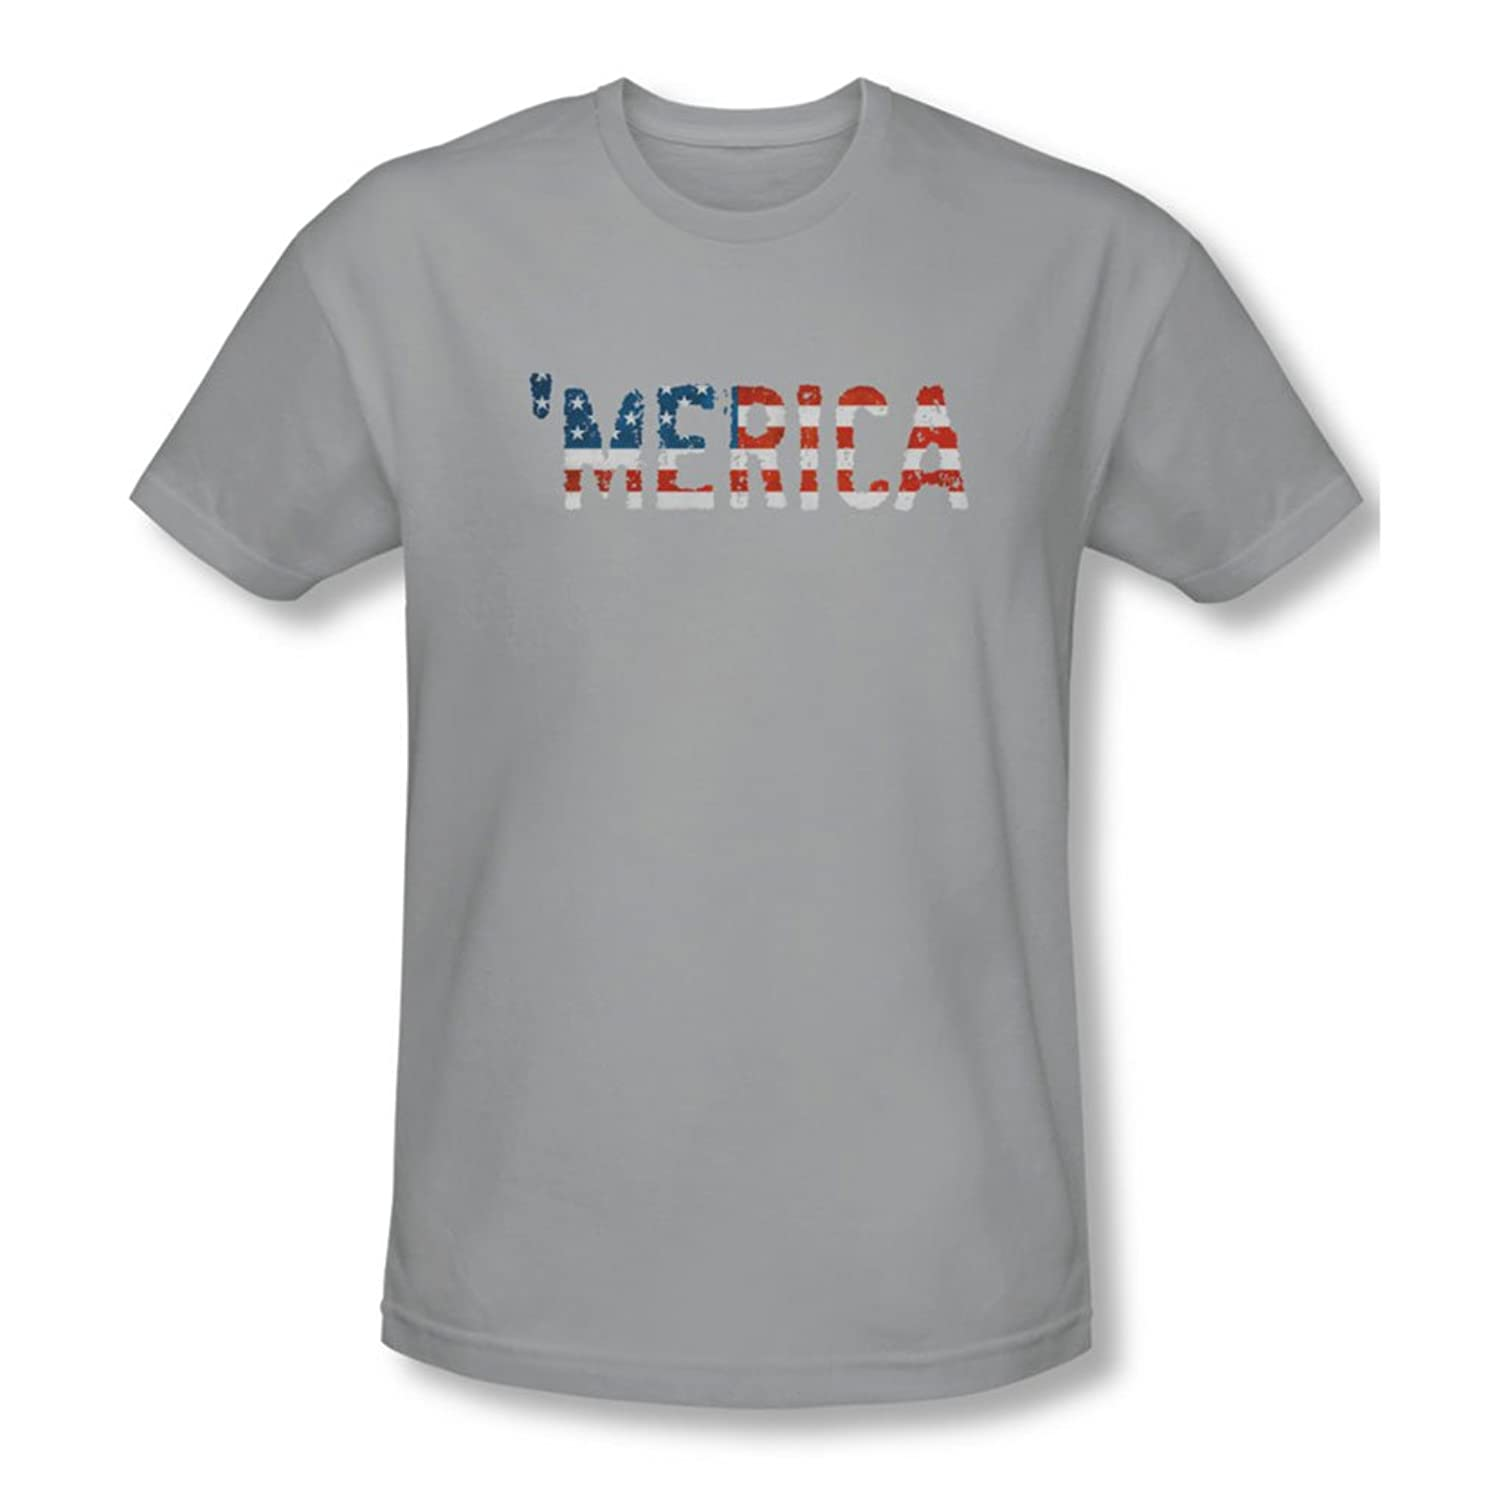 Merica - Mens Slim Fit T-Shirt In Silver, X-Large, Silver